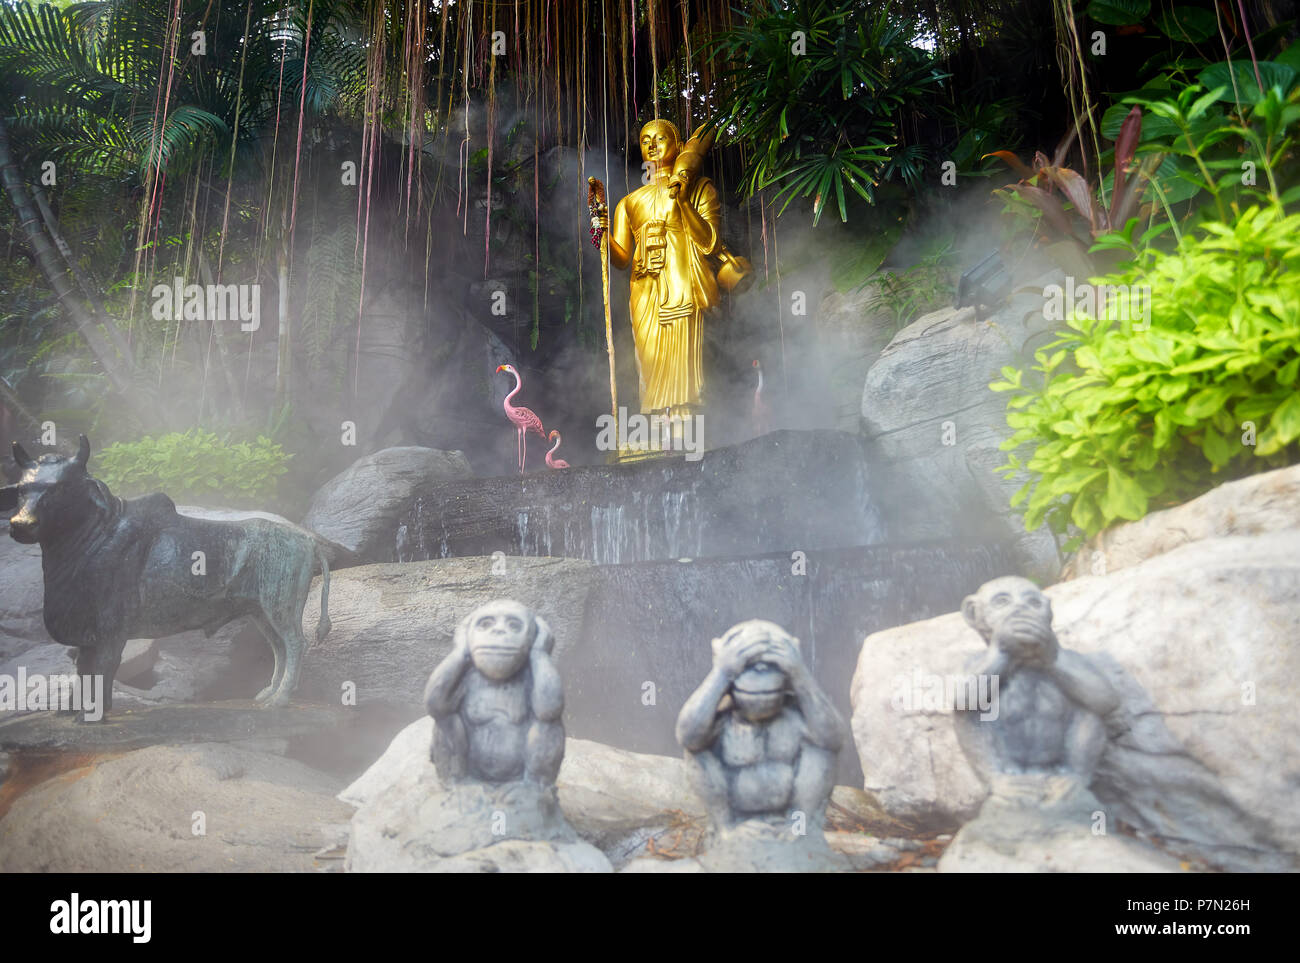 Golden Buddha statue in the tropical garden with waterfall in Wat Saket Golden Mountain Temple in Bangkok Stock Photo